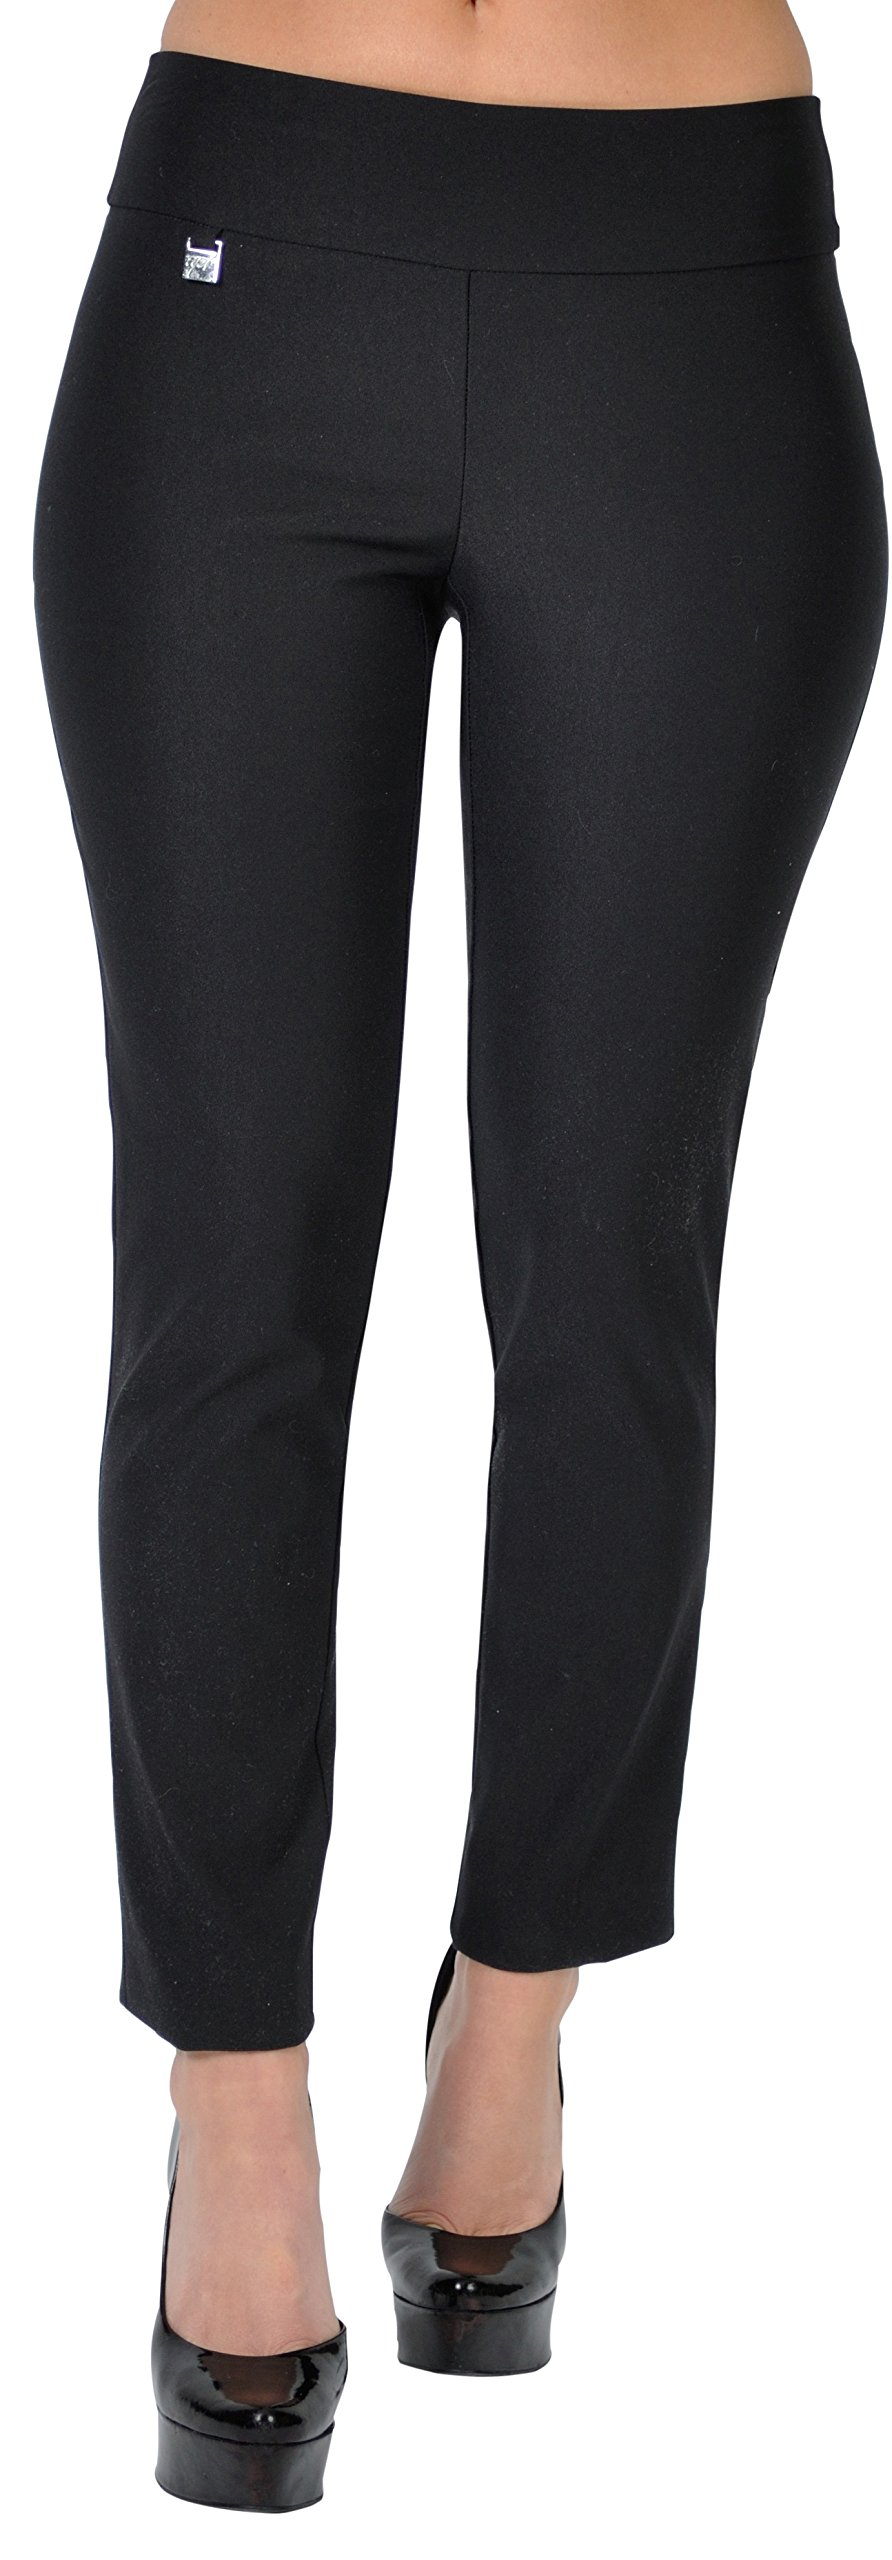 UP Womens Slim Ankle Pants Flatten and Flatter Style 64566 Size 14 Black